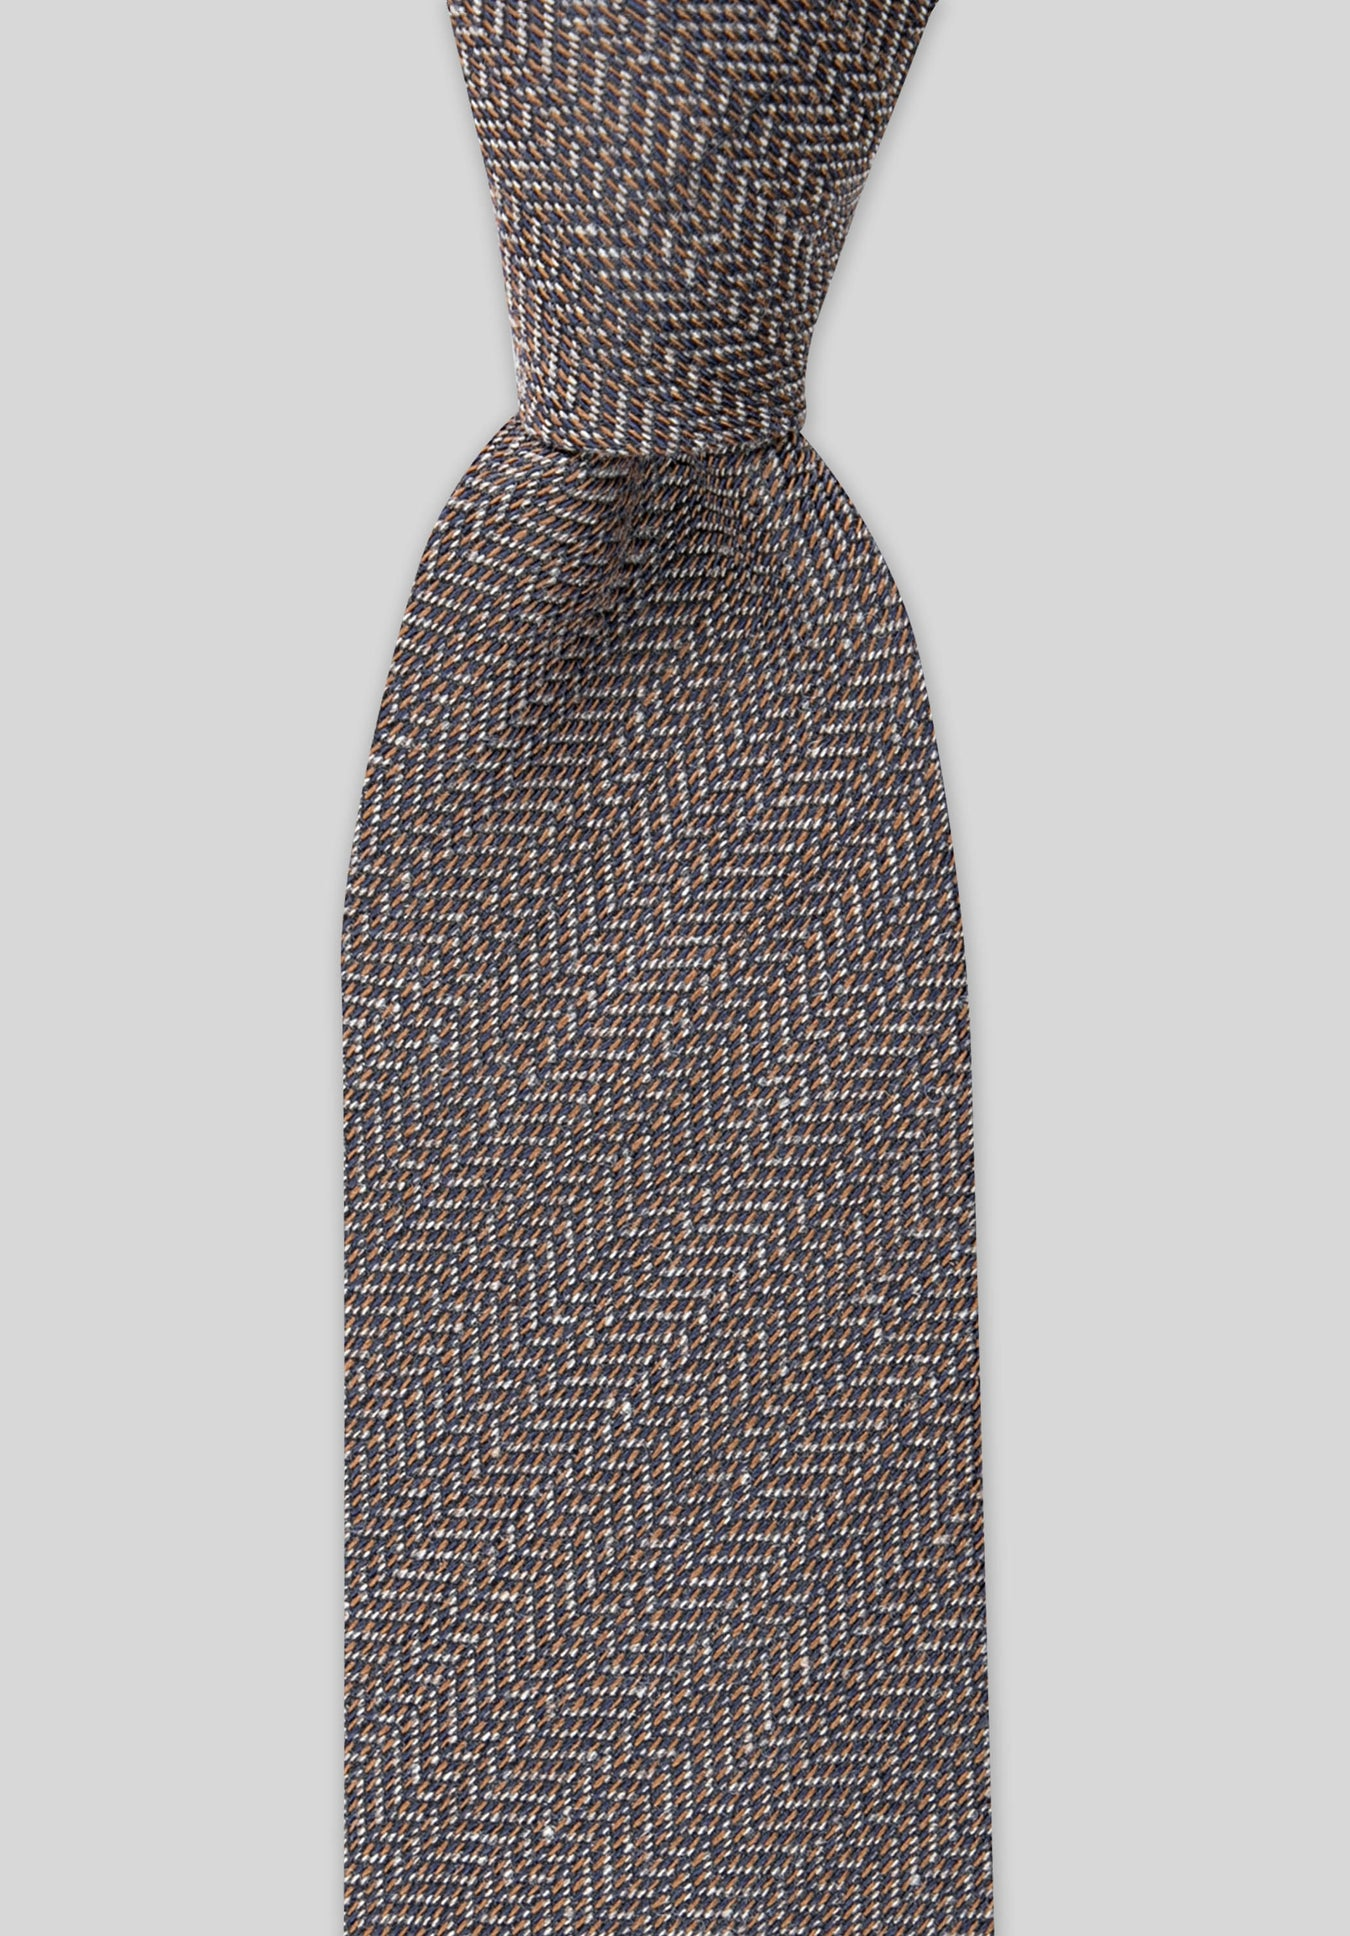 HERRINGBONE 7.5CM WOOL TIE - Chocolate